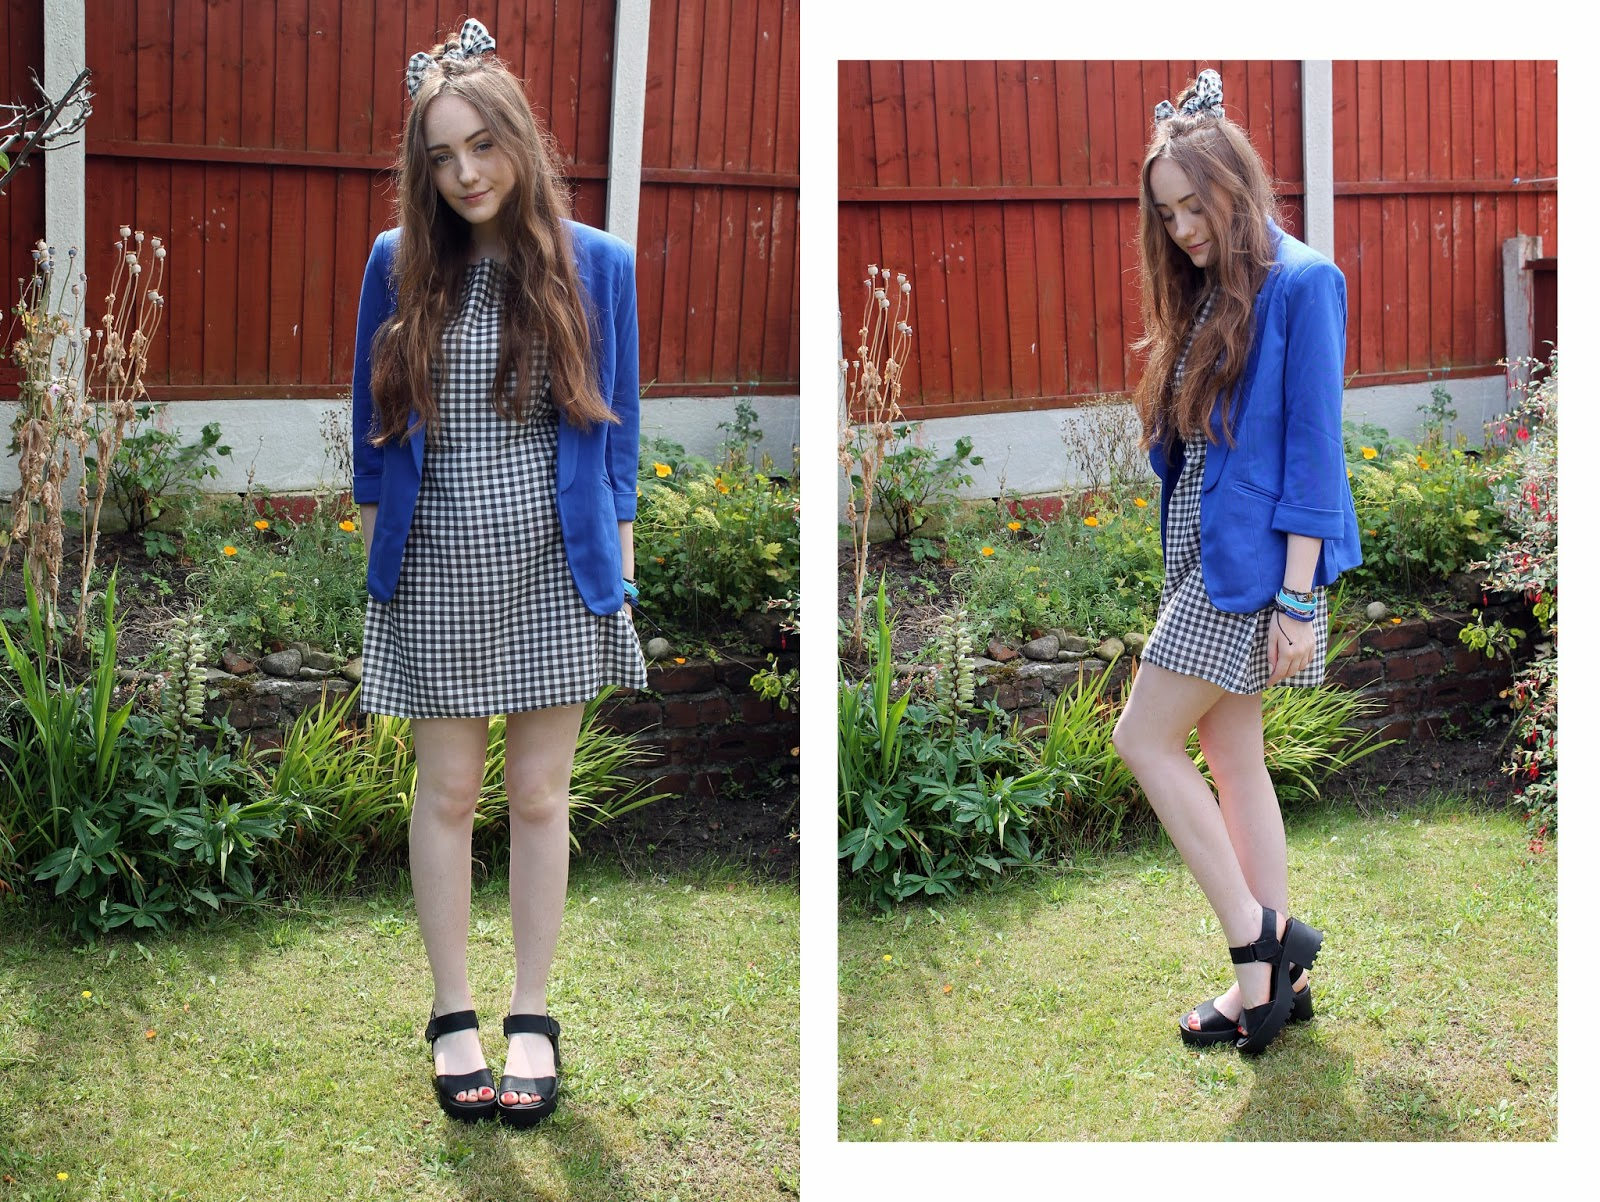 royal blue blazer with gingham smock dress, gingham hair bow and black cleated sole sandals